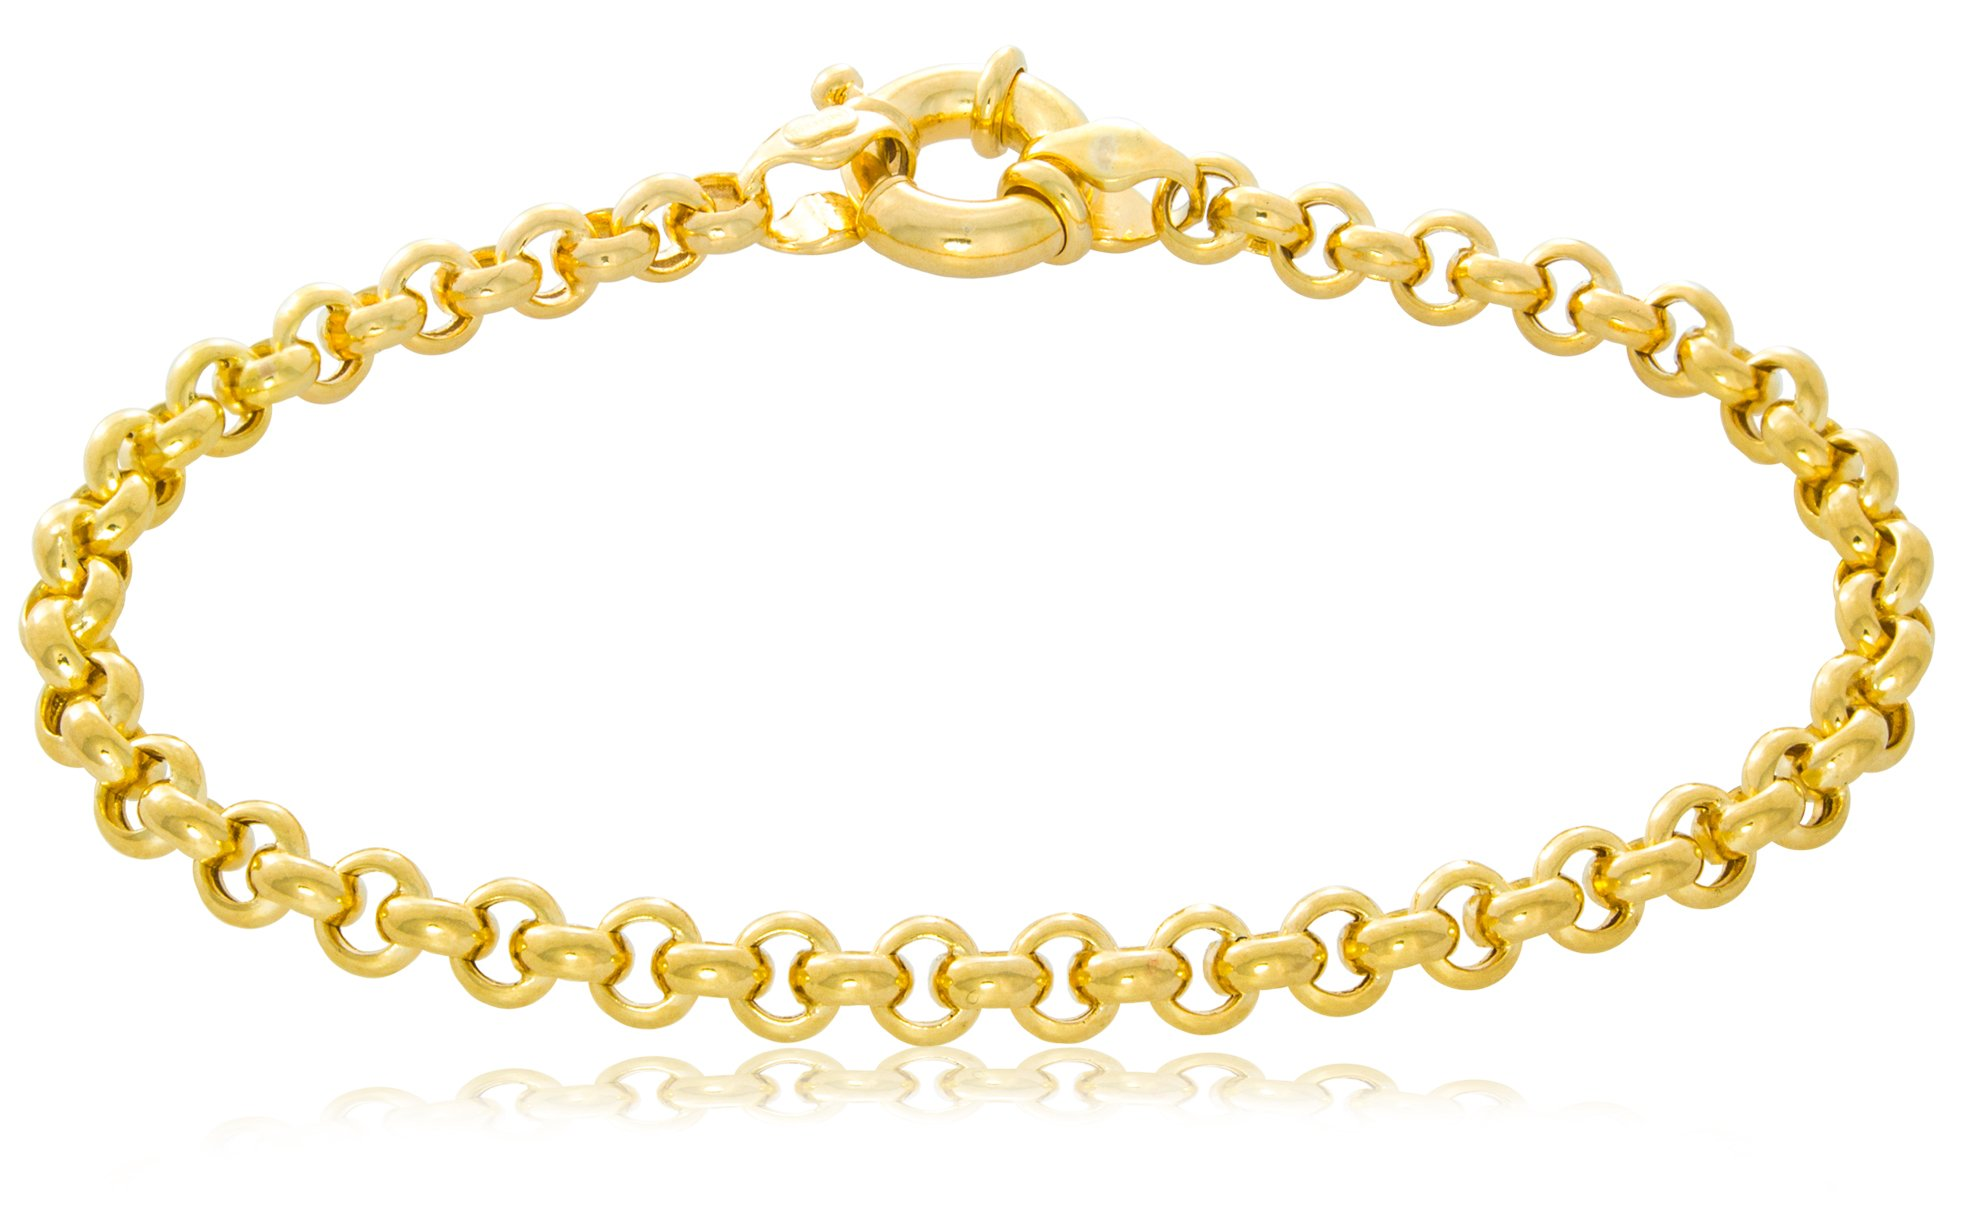 14K Rolo Chain Bracelet Made in Italy with Fancy Clasp| Hollow 5.4mm | Length 7'' | 7.7g